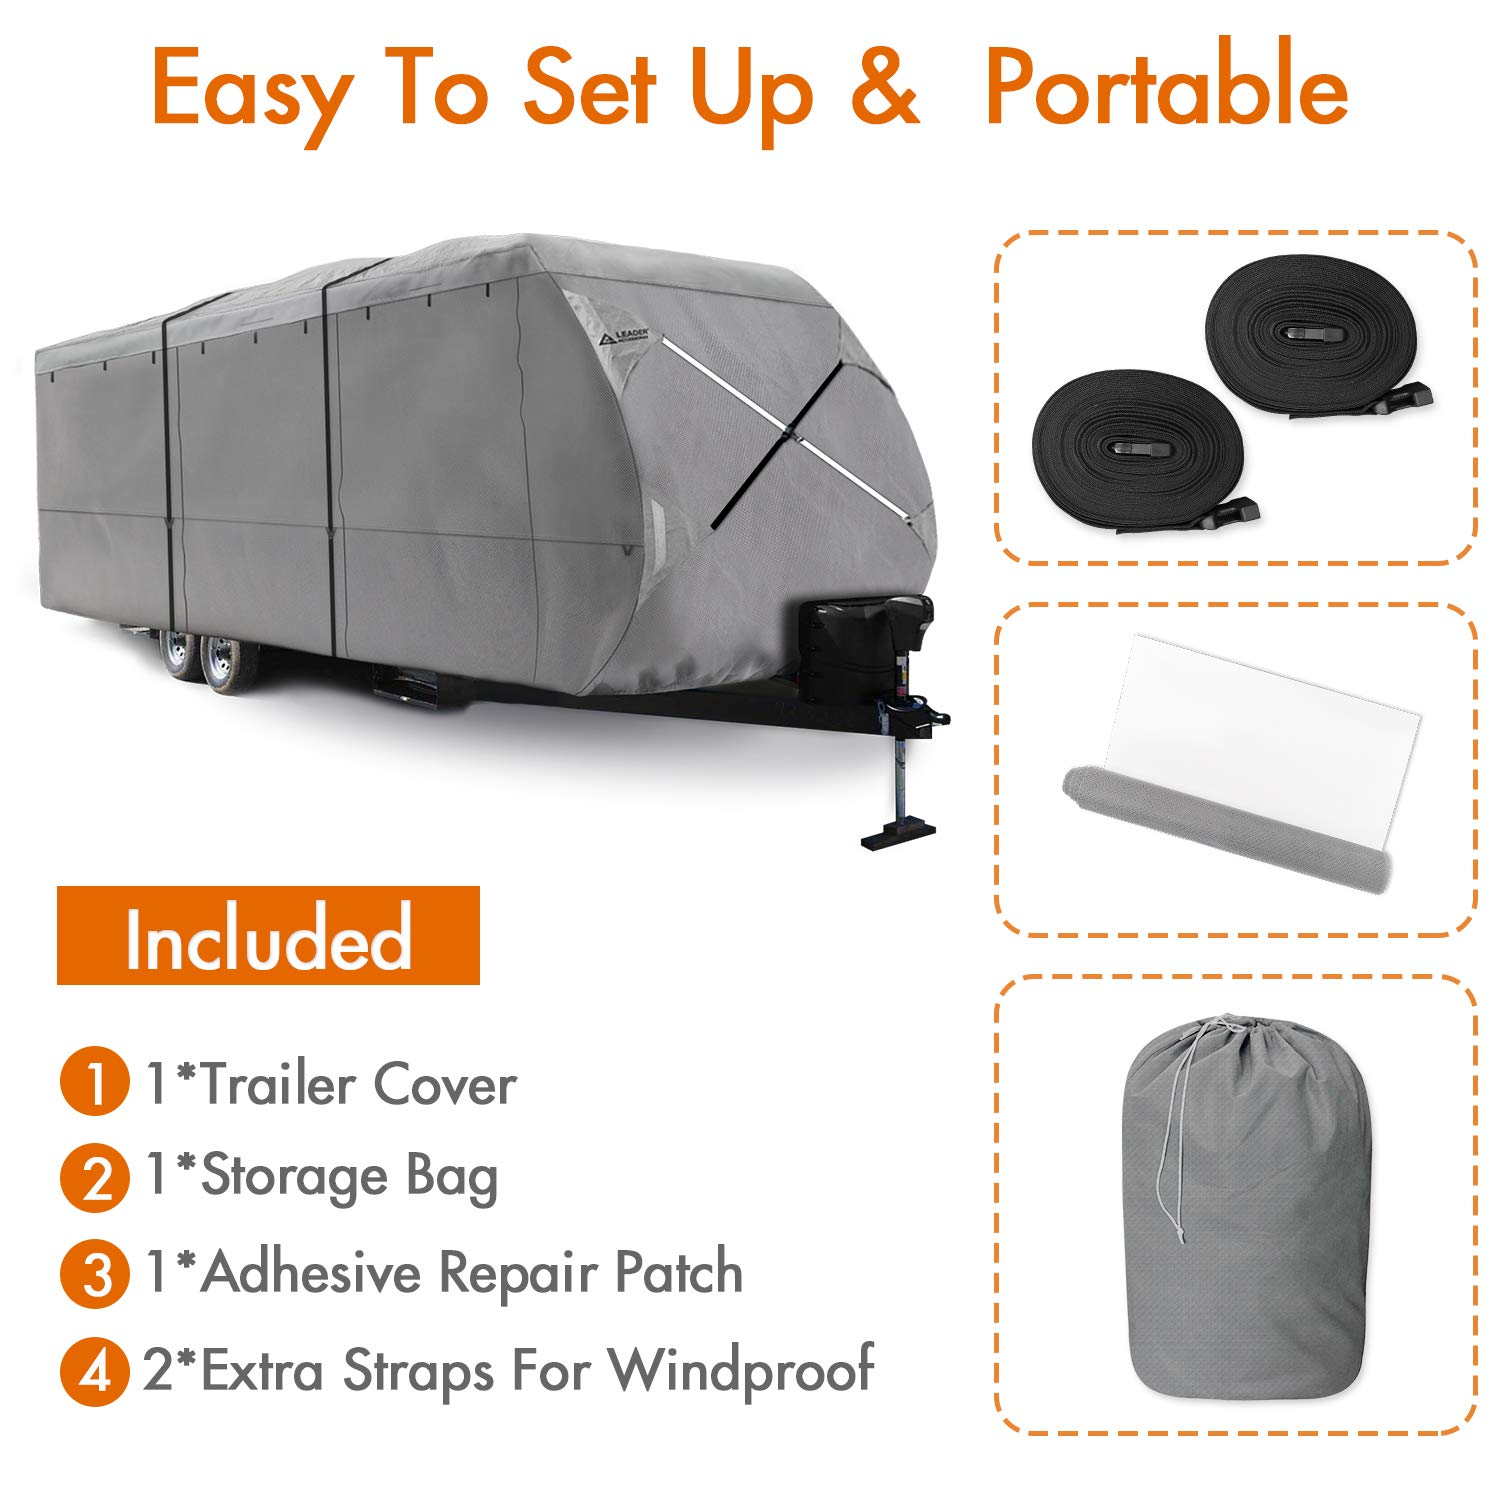 Leader Accessories Windproof Upgraded Travel Trailer RV Cover Fits 24-27 Camper 300D Top Premium Fabric